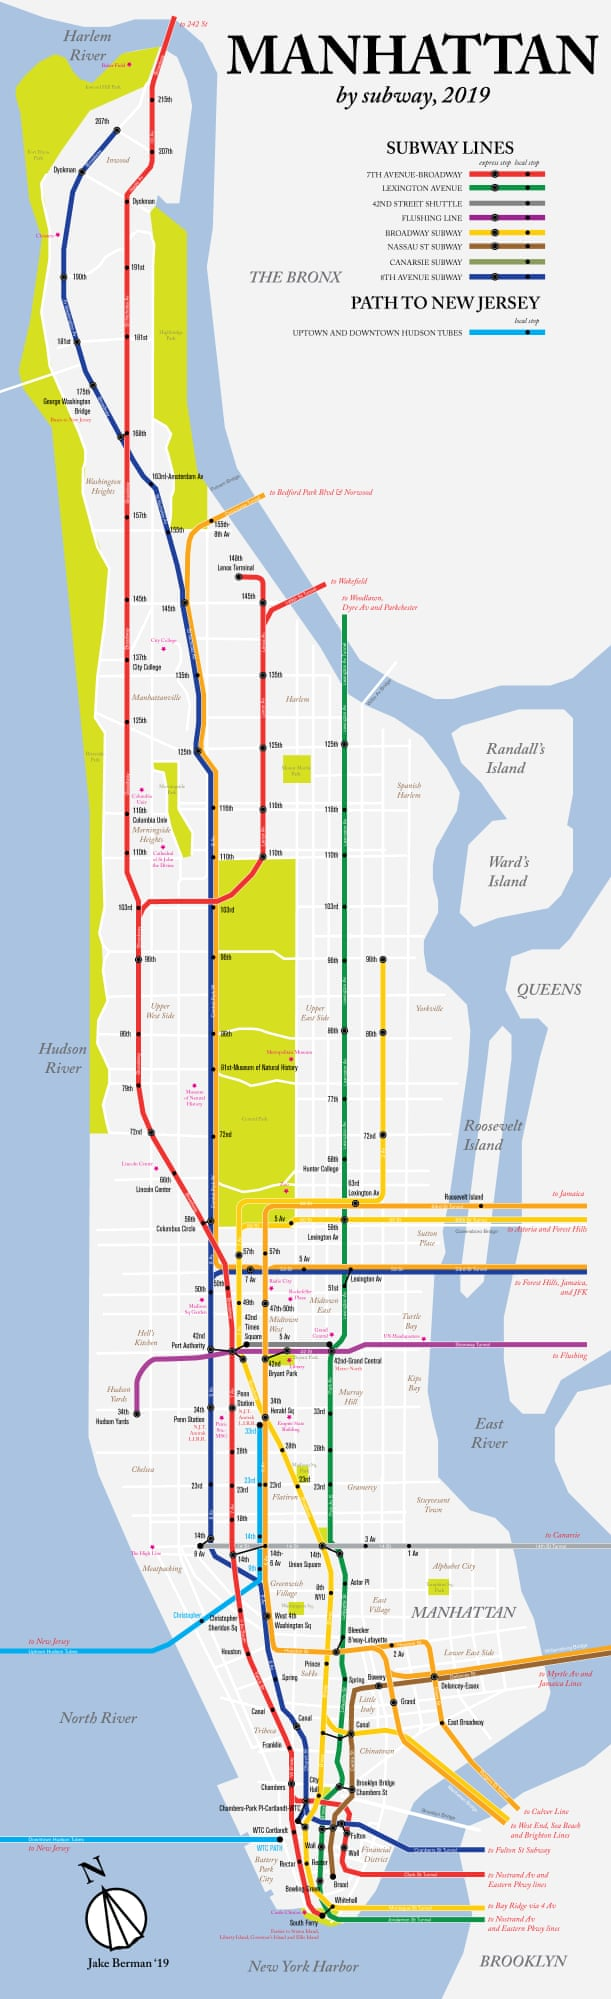 Nyc Subway Map 1910.Mapped Historical Public Transit Systems V Their Modern Equivalents